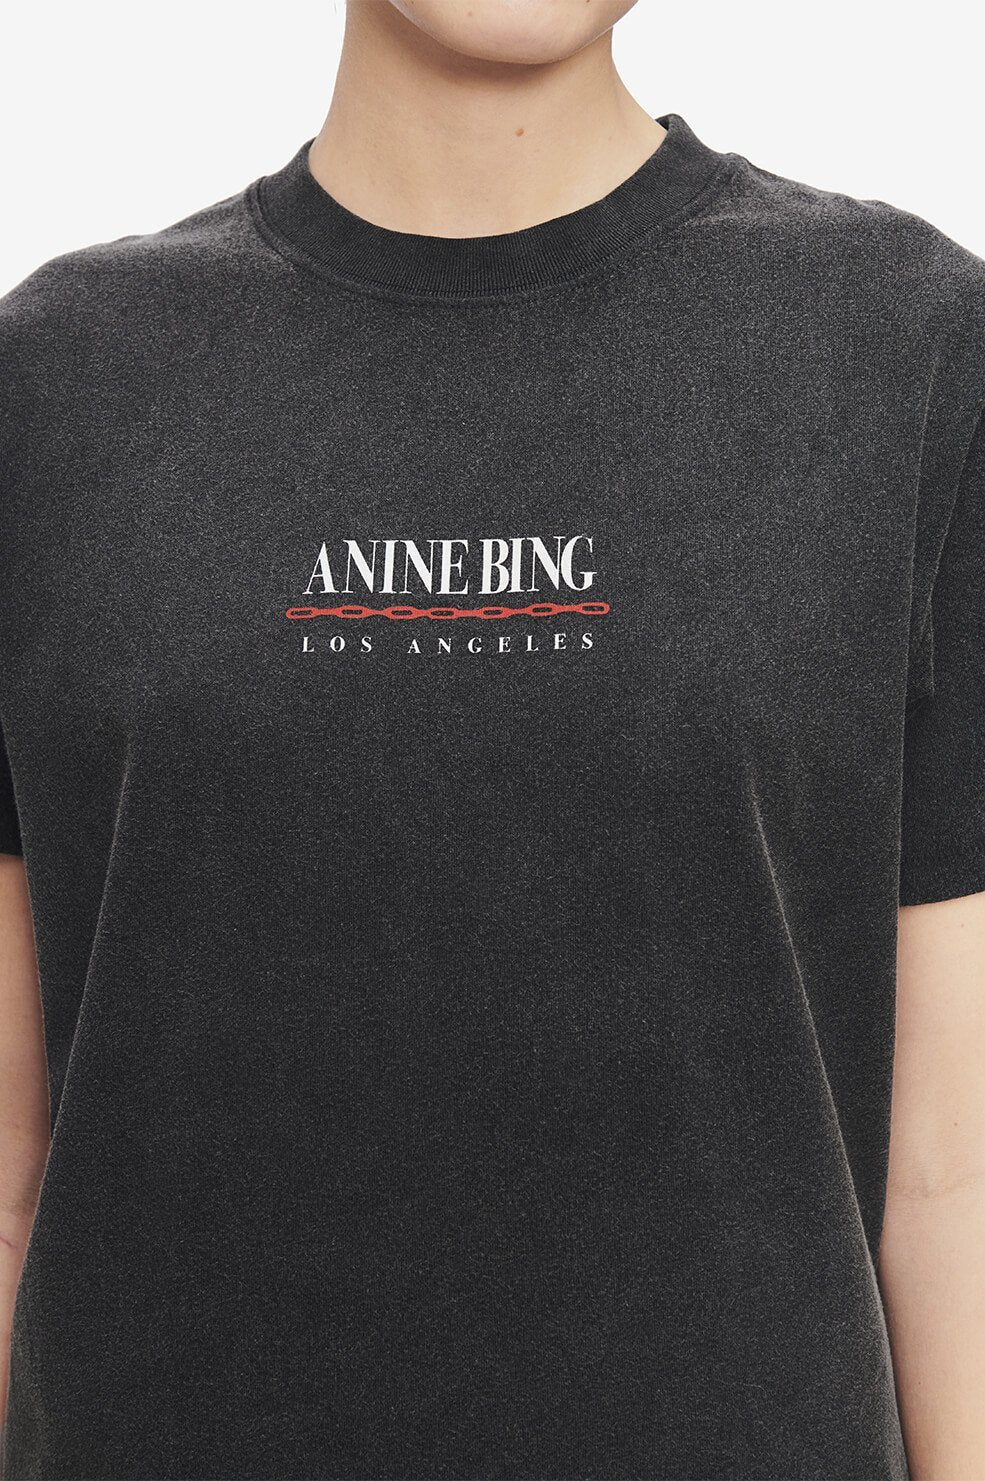 Anine Bing Womens T Shirt Anine Bing | Lili Link Tee - Washed Black